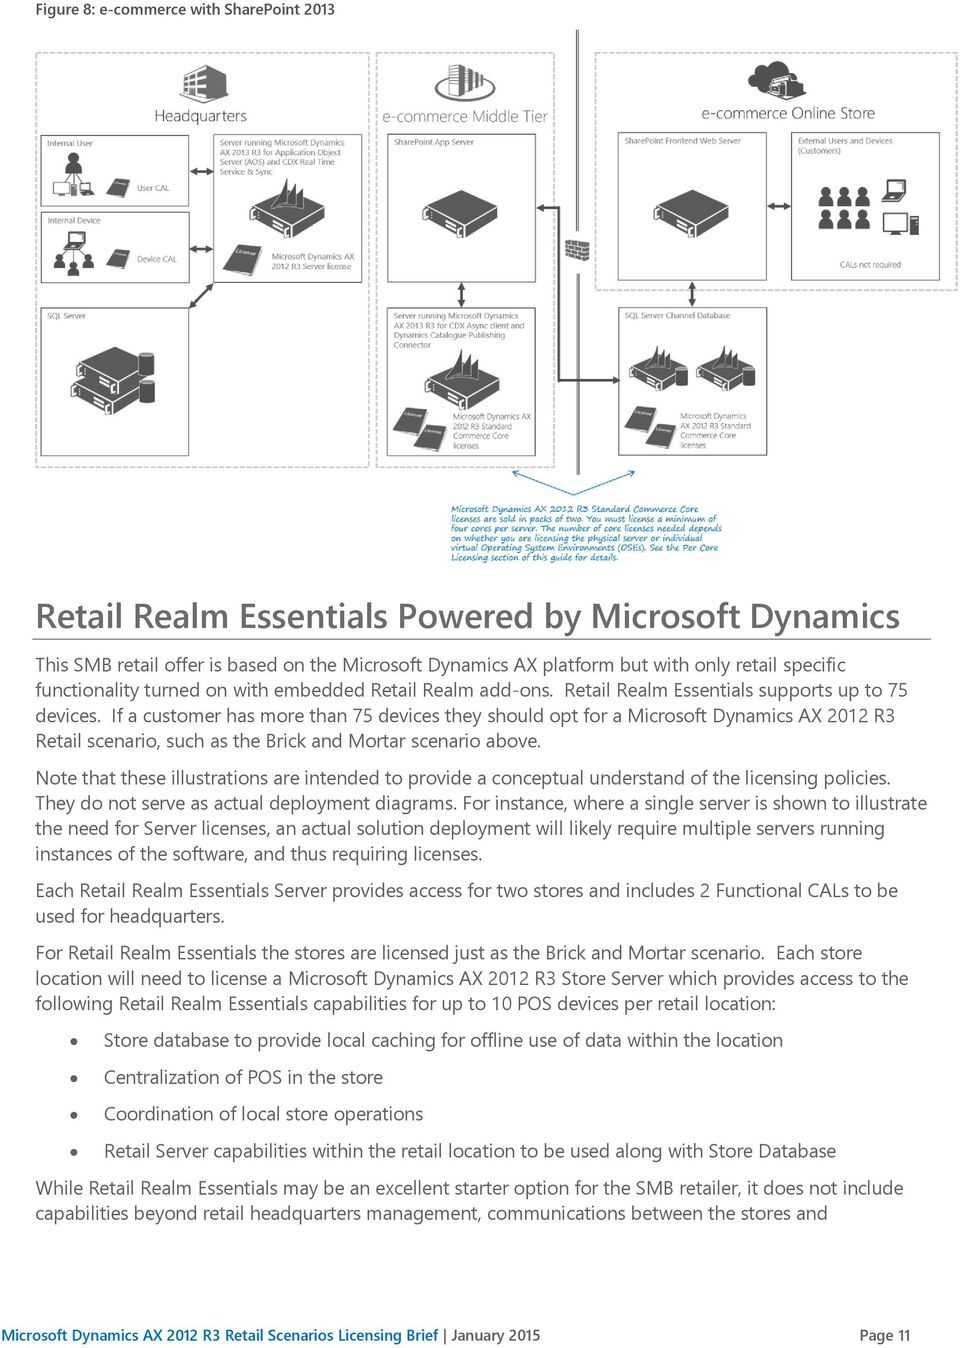 If a customer has more than 75 devices they should opt for a Microsoft Dynamics AX 2012 R3 Retail scenario, such as the Brick and Mortar scenario above.